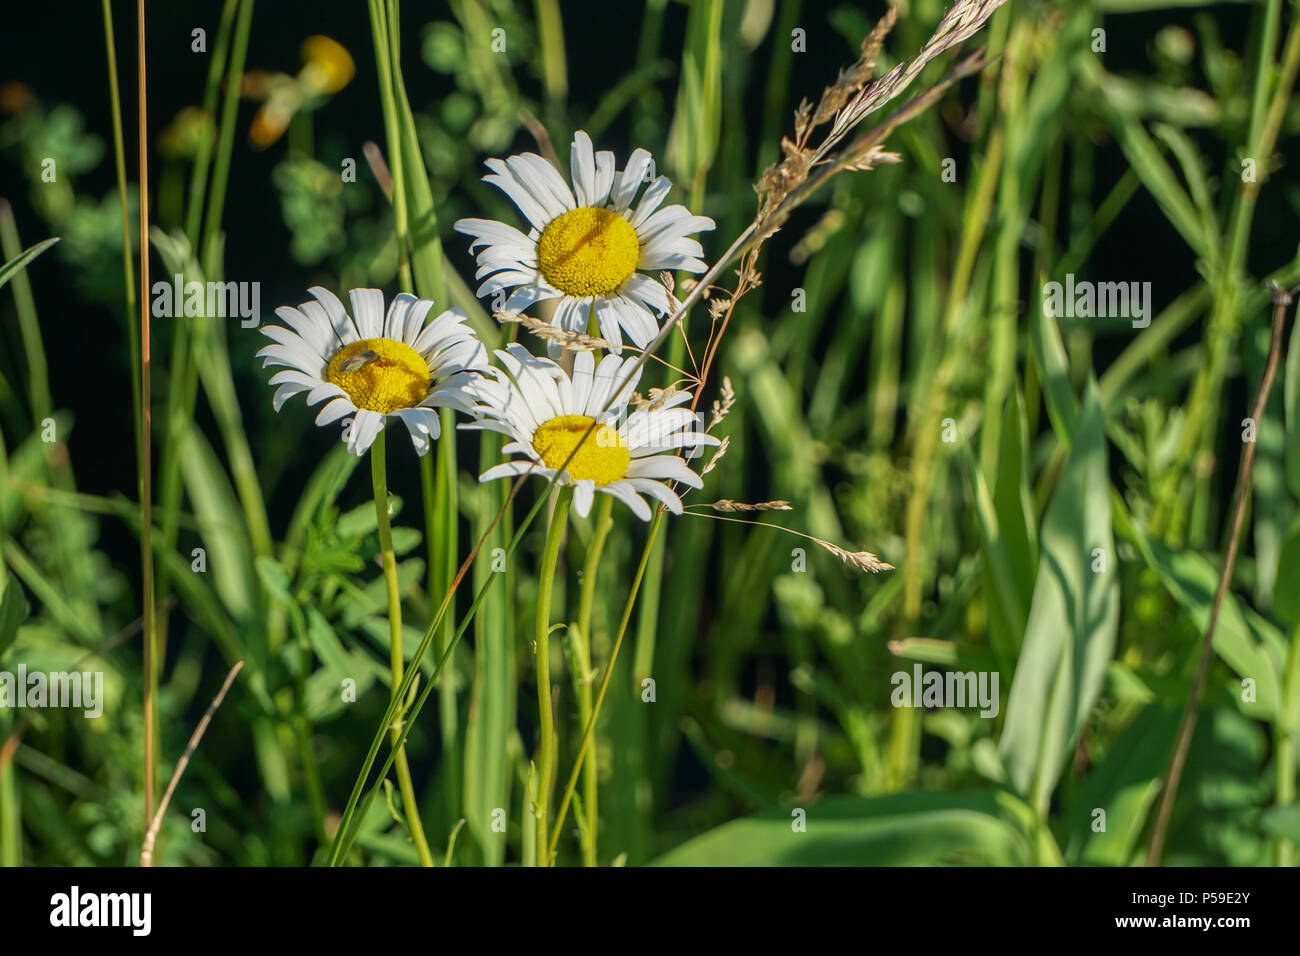 Weeds in grass - Stock Image